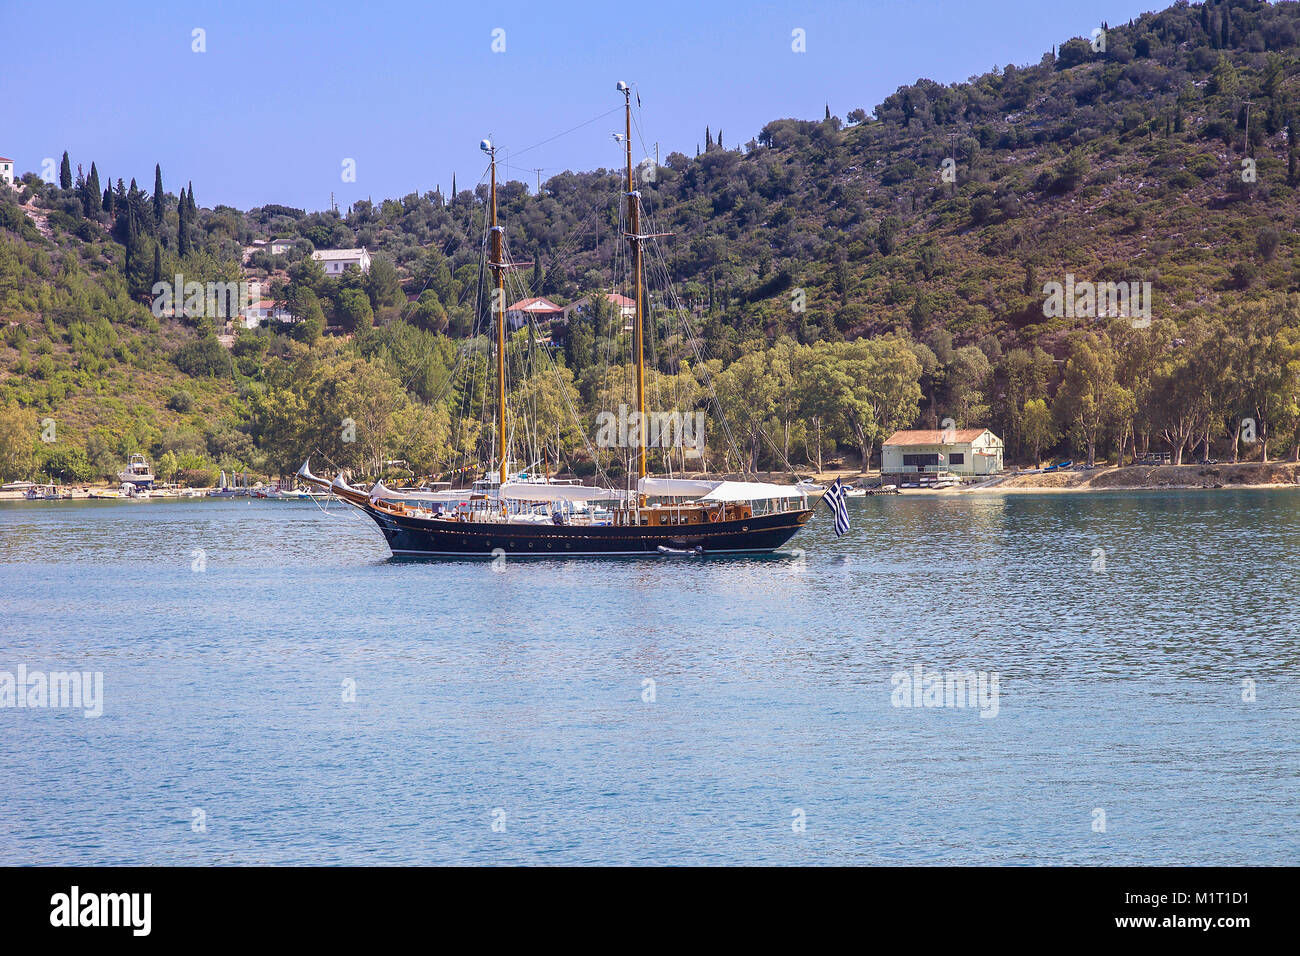 Ithaca -  Greece July 13 -  Big wooden sailboat anchored in a bay on the island of Ithaca off the northeast coast Stock Photo